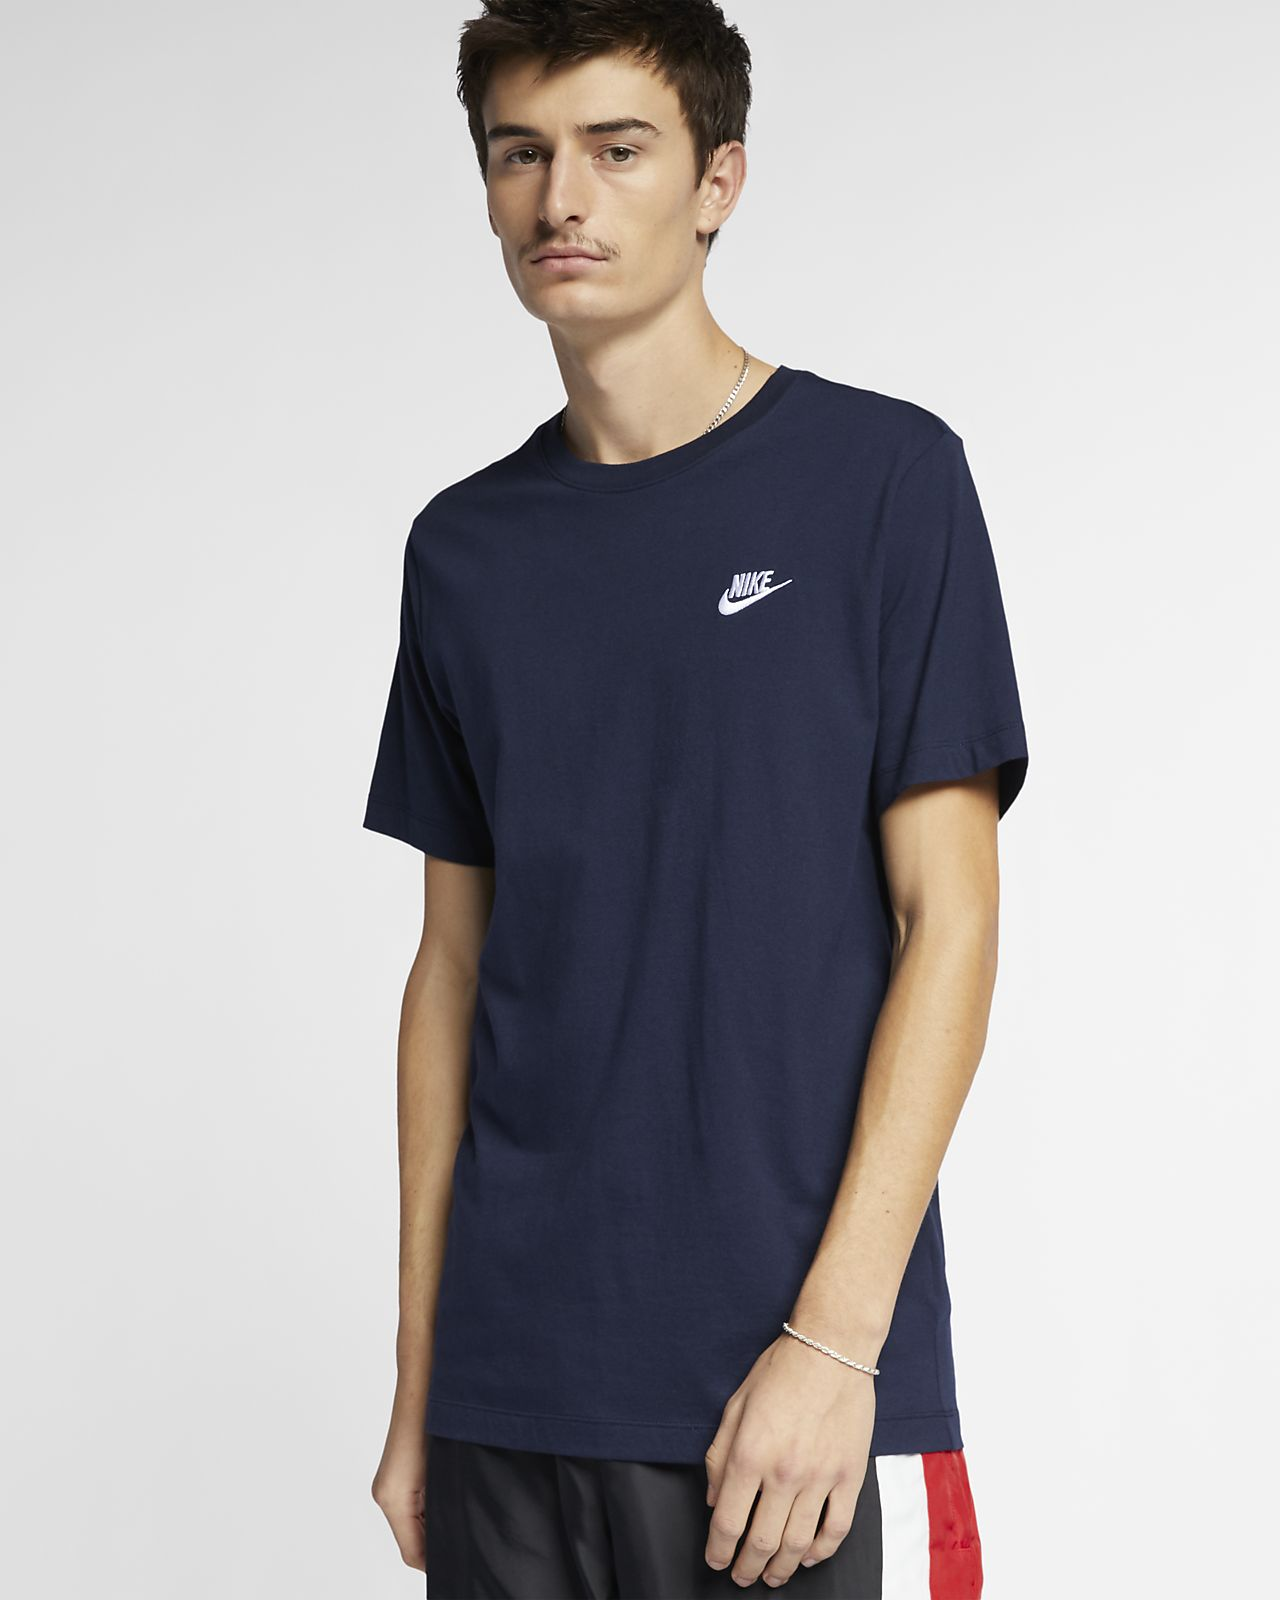 new product 2113b 182ae Tee-shirt Nike Sportswear Club pour Homme